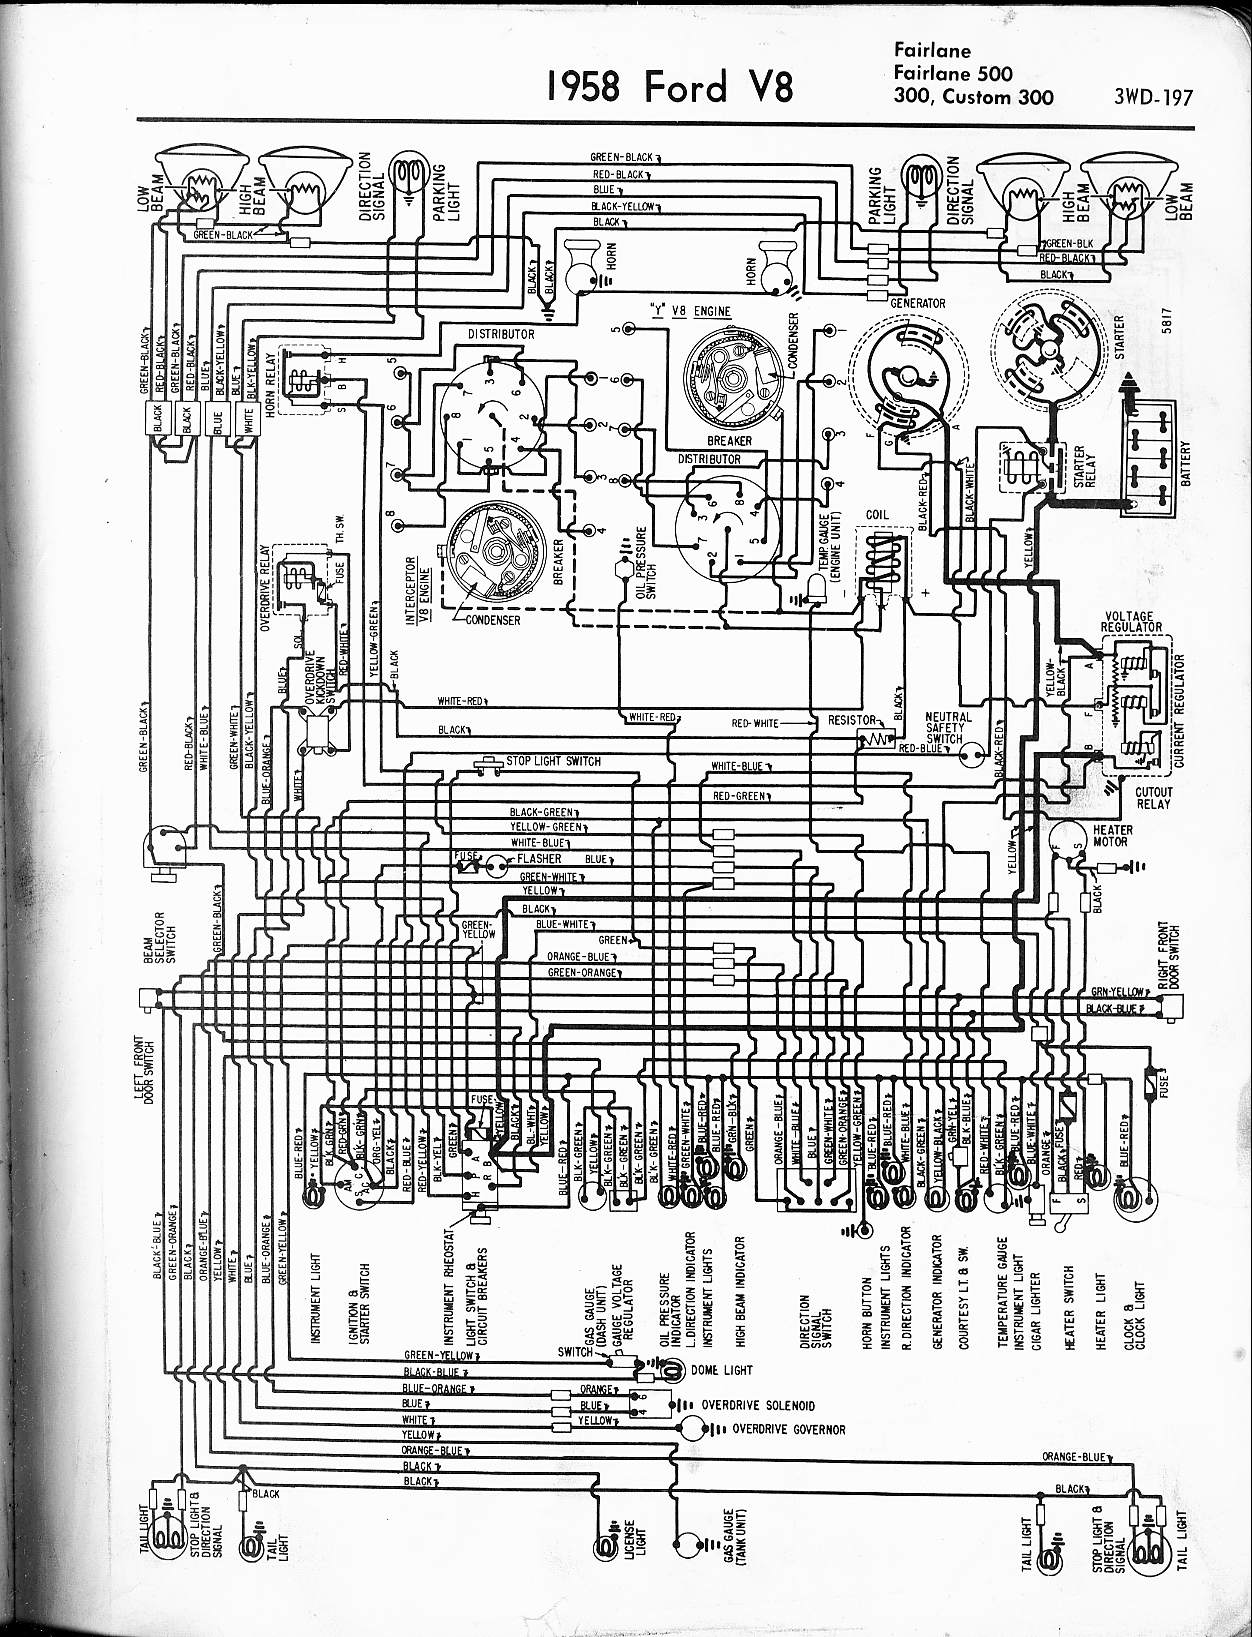 MWire5765 197 1958 ford car wiring diagram 1958 wirning diagrams 2000 Ford Headlight Switch Wiring Diagram at webbmarketing.co